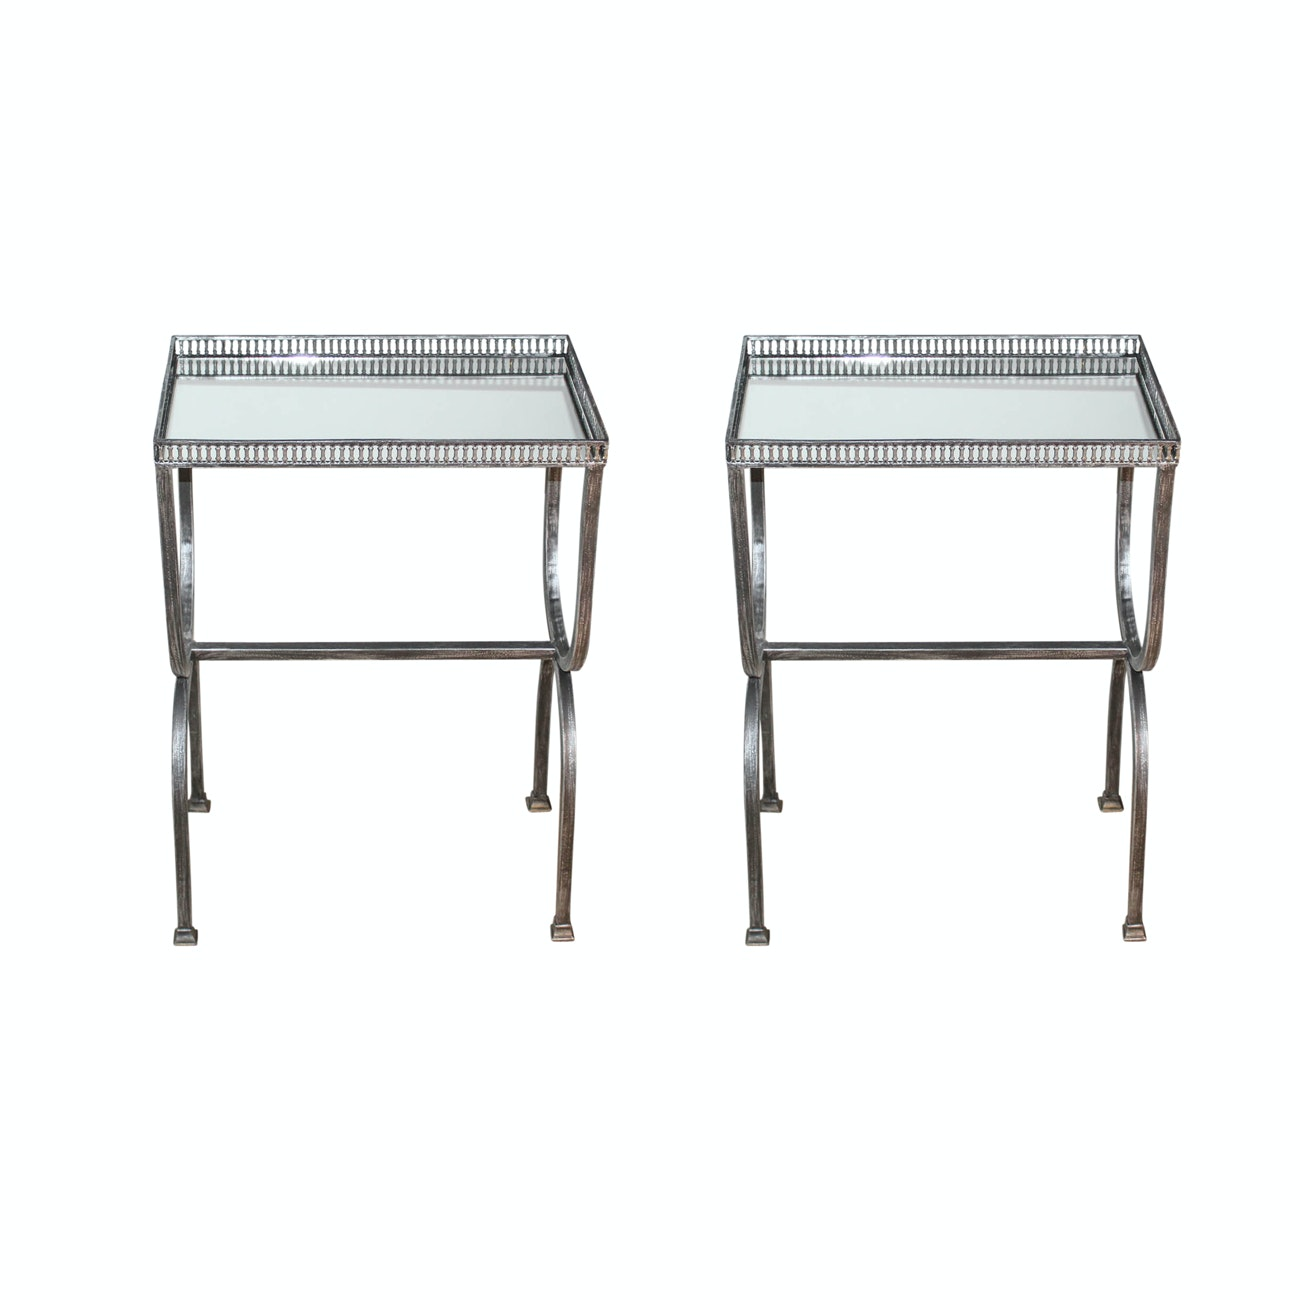 Pair of Mirrored Accent Tables